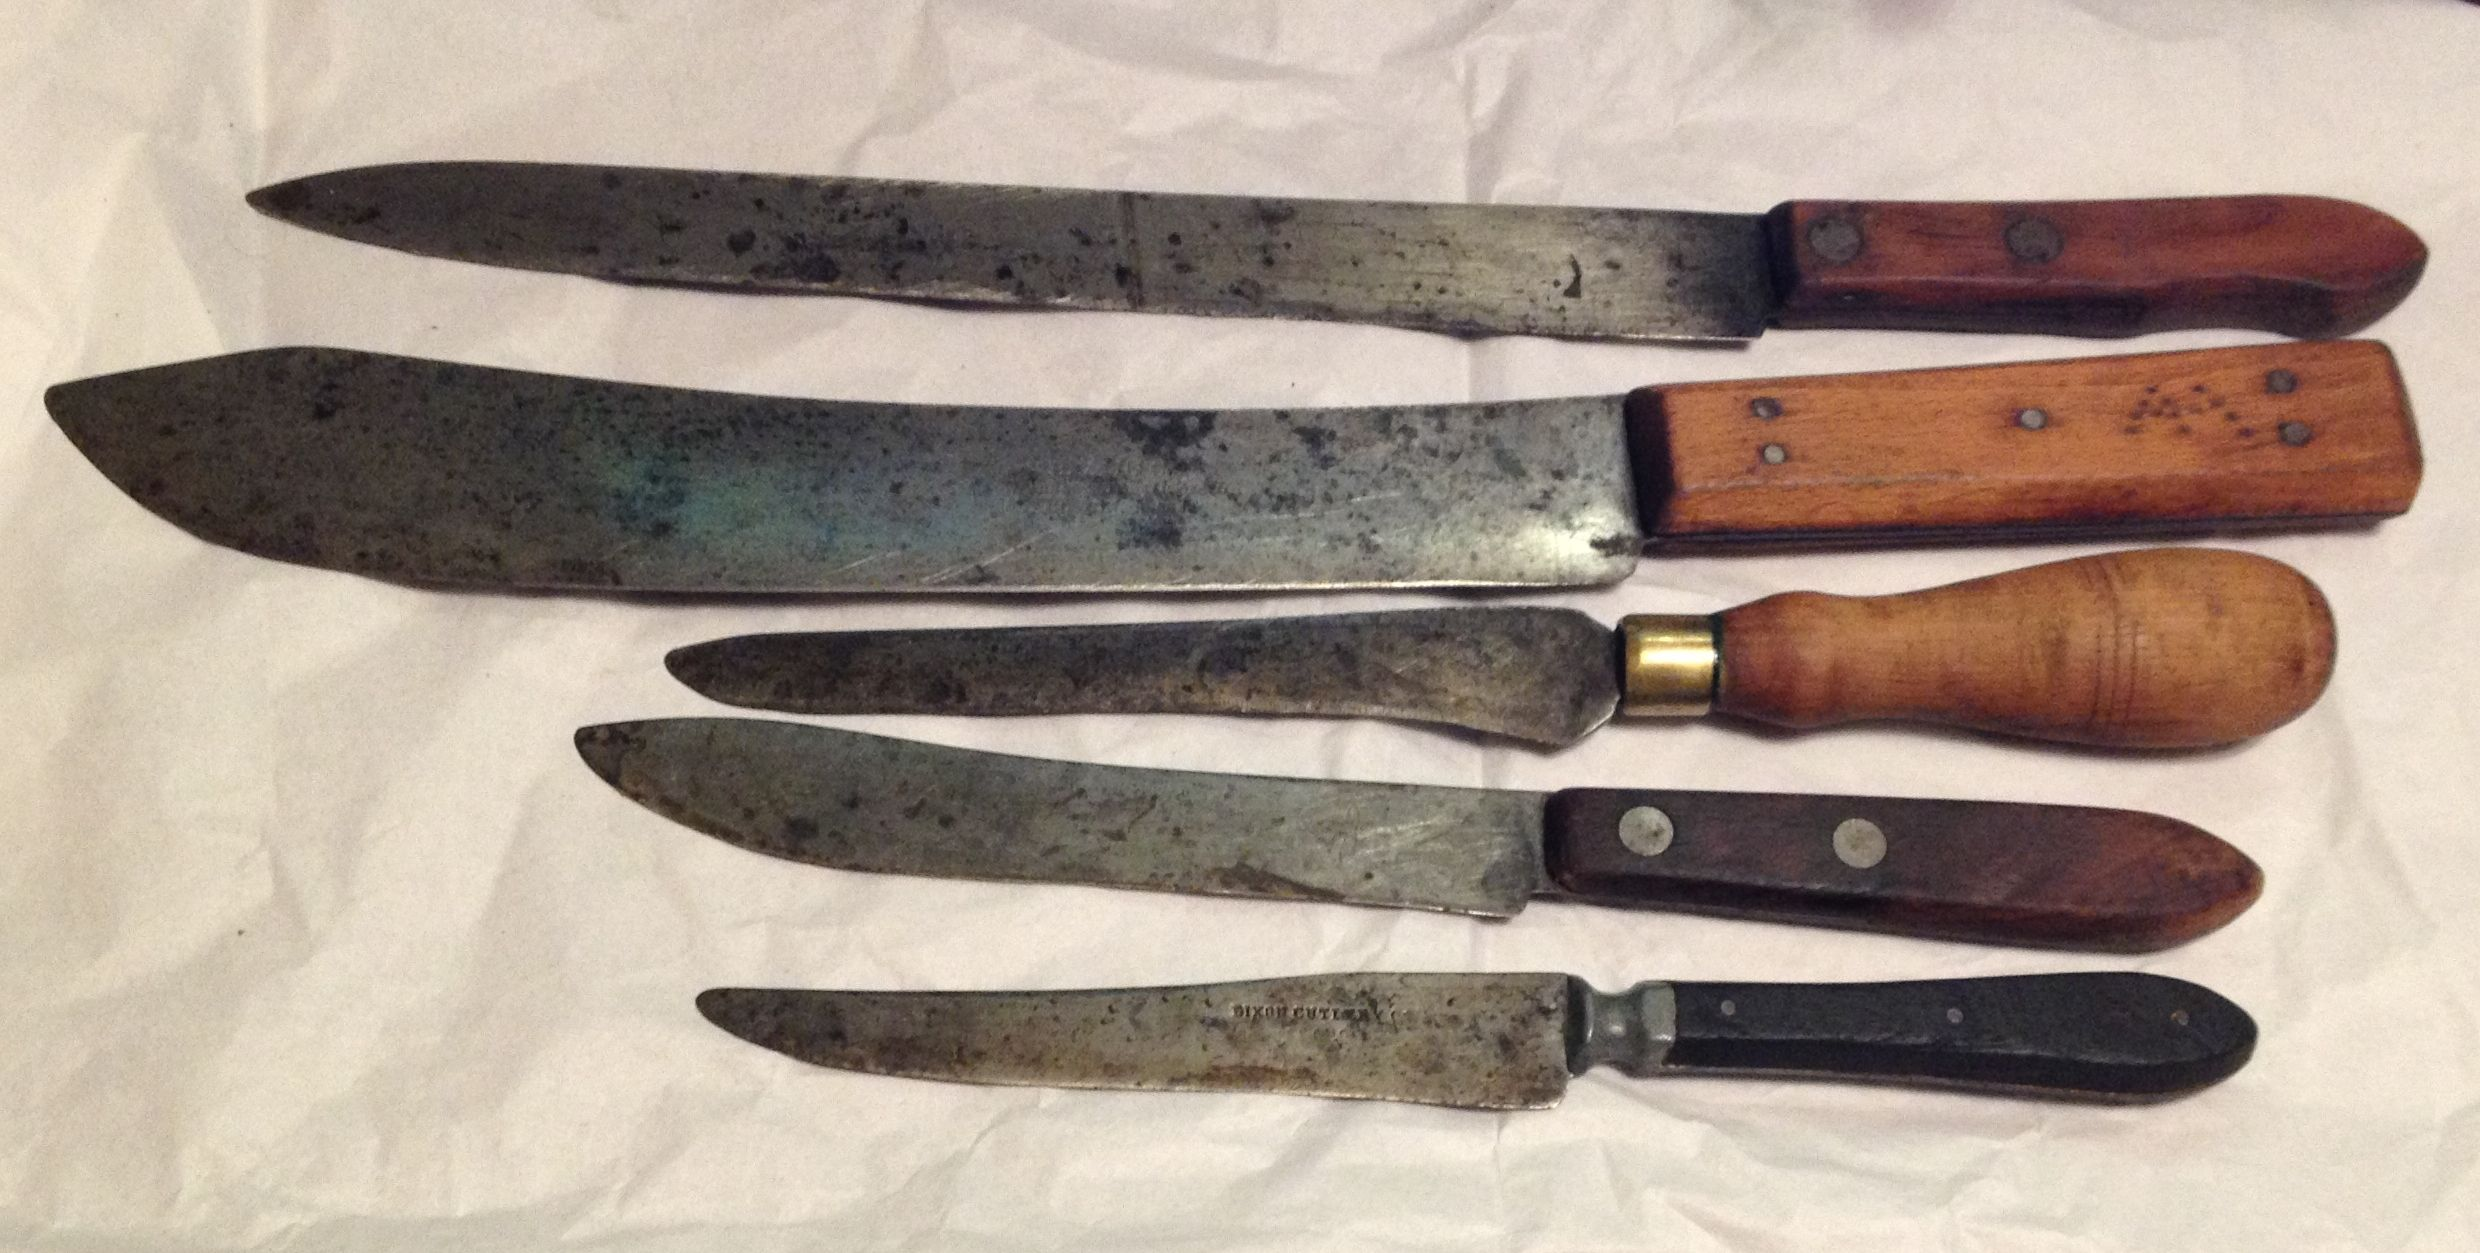 Antique Cooking Knives Colonial America Pinterest Kitchen Knives Knives And Decoration